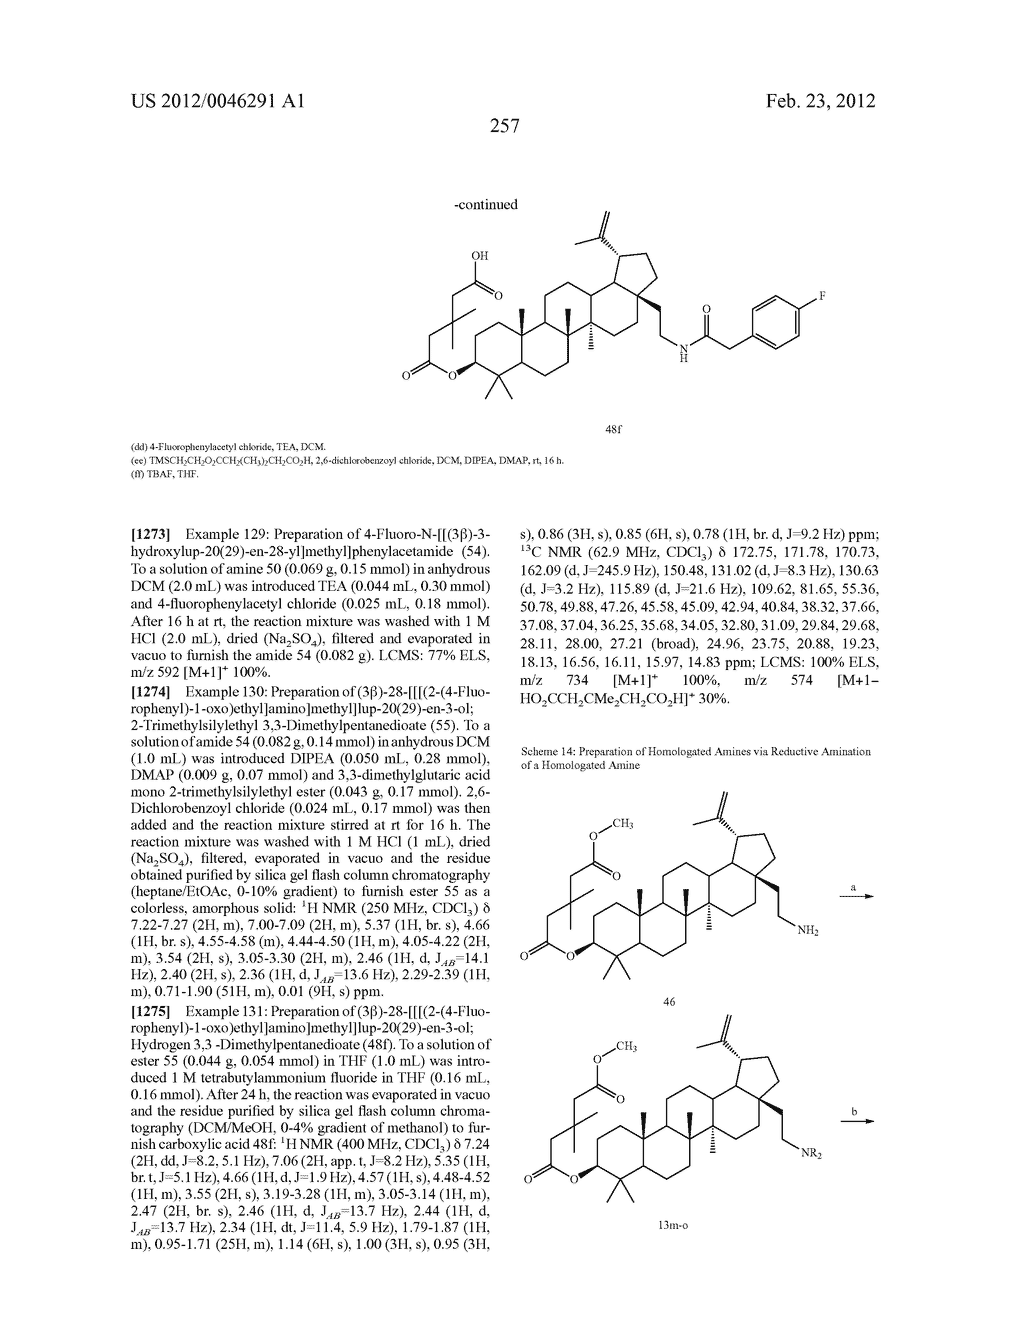 Extended Triterpene Derivatives - diagram, schematic, and image 257